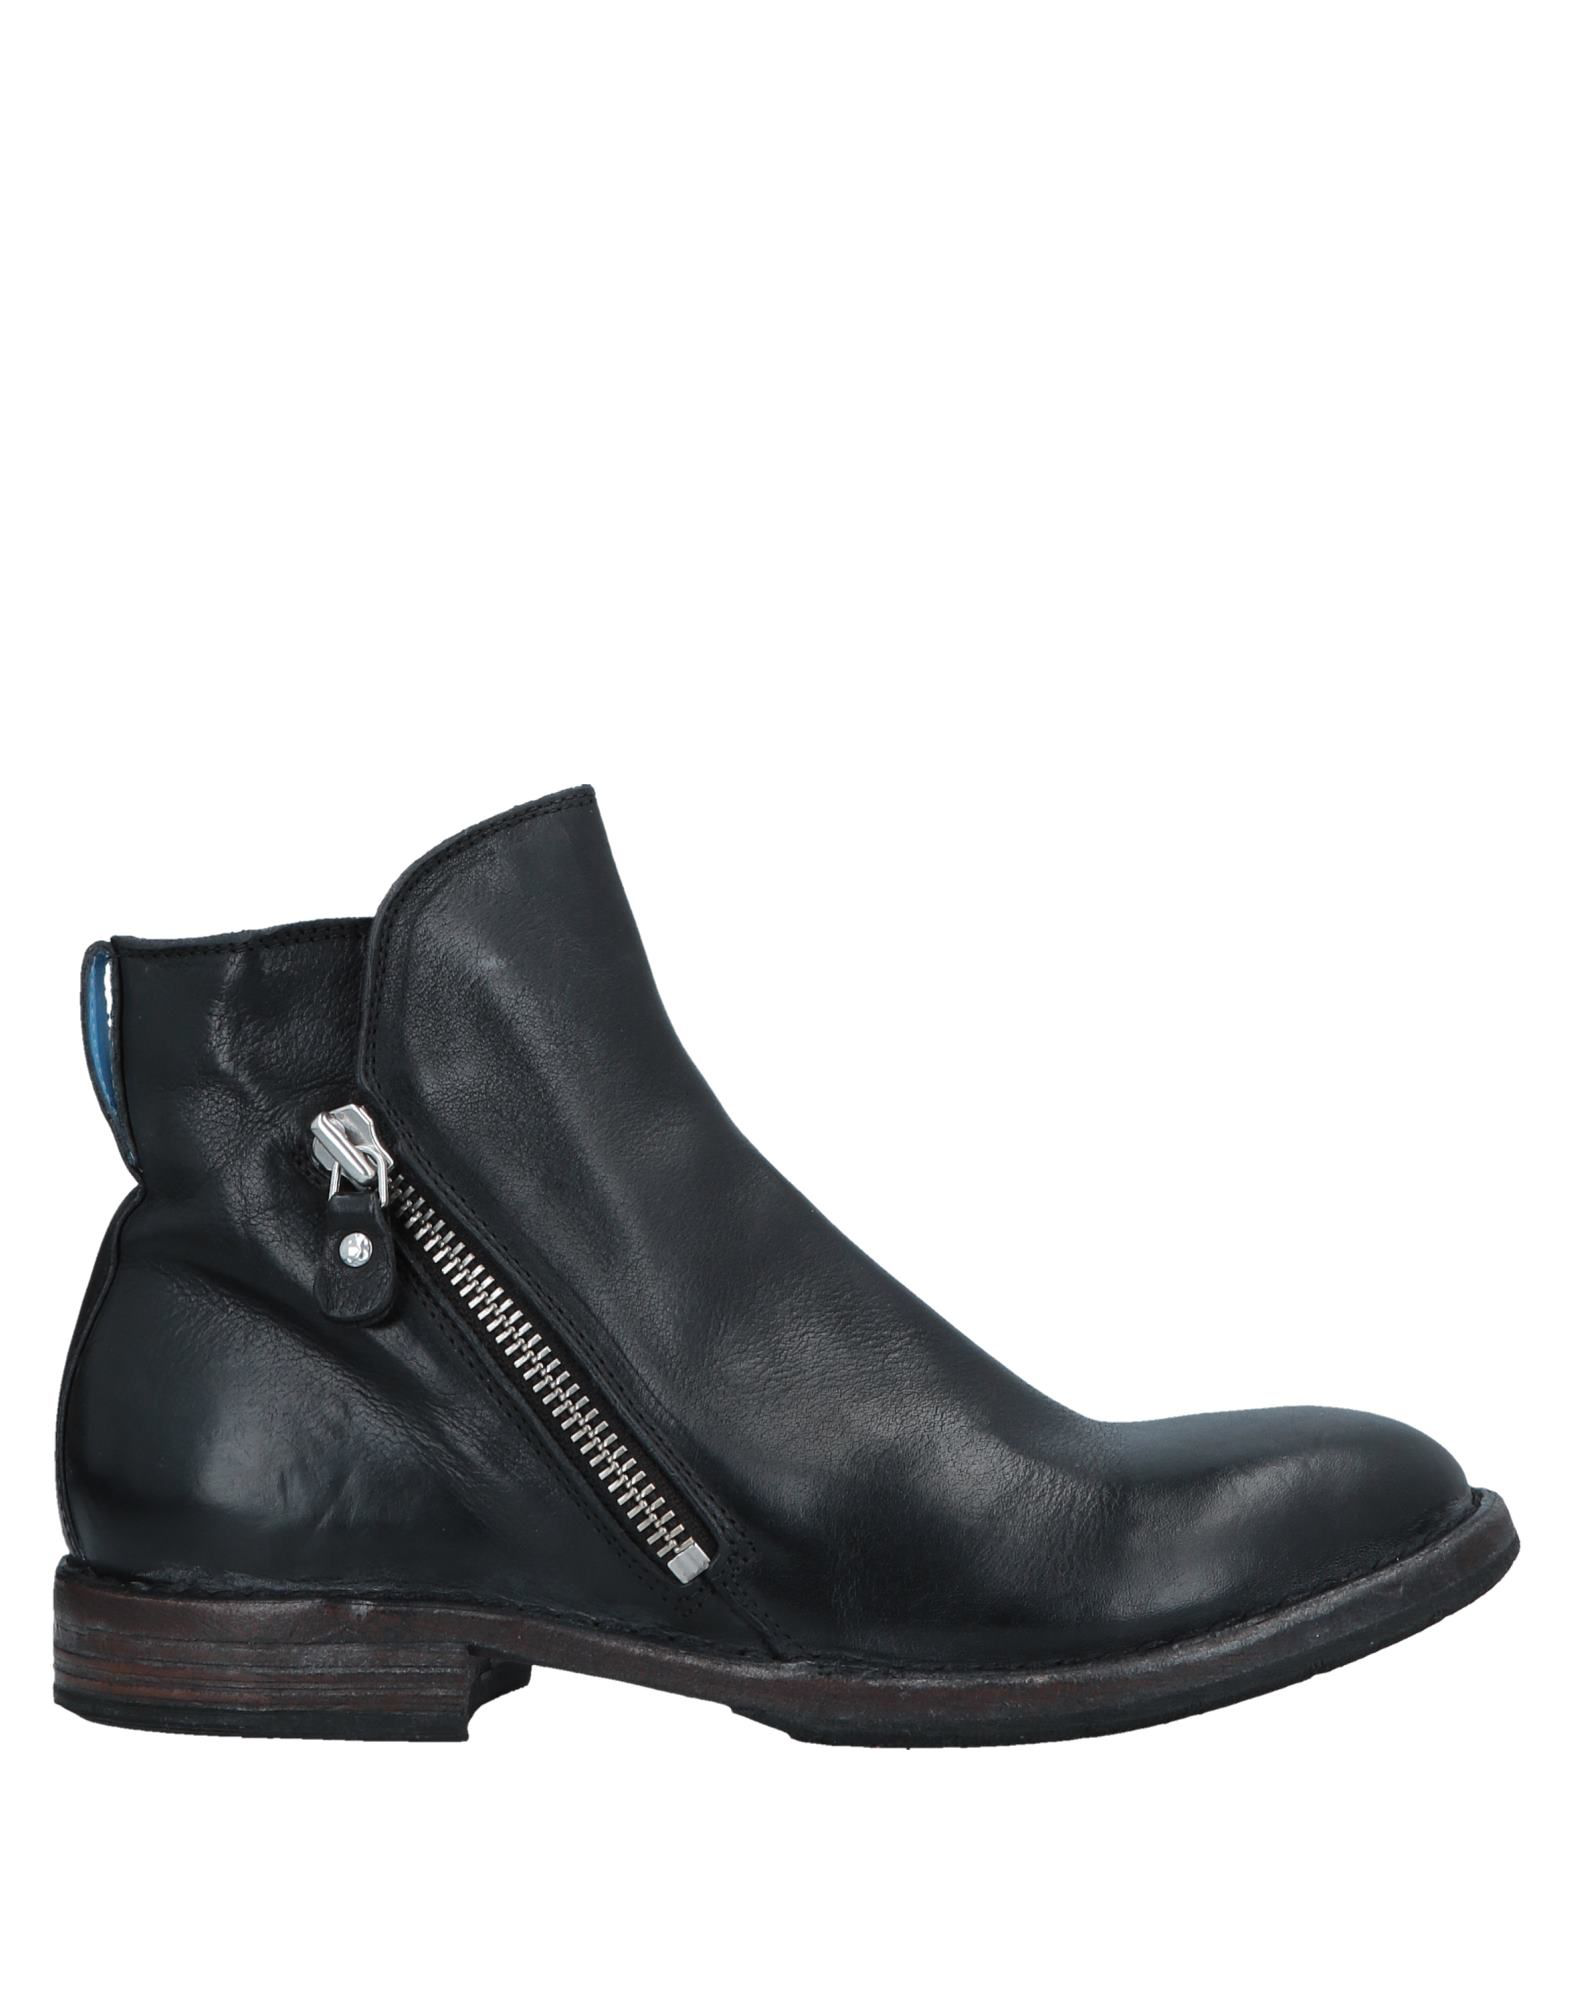 Moma Men's 56802 Black Leather Ankle Boots